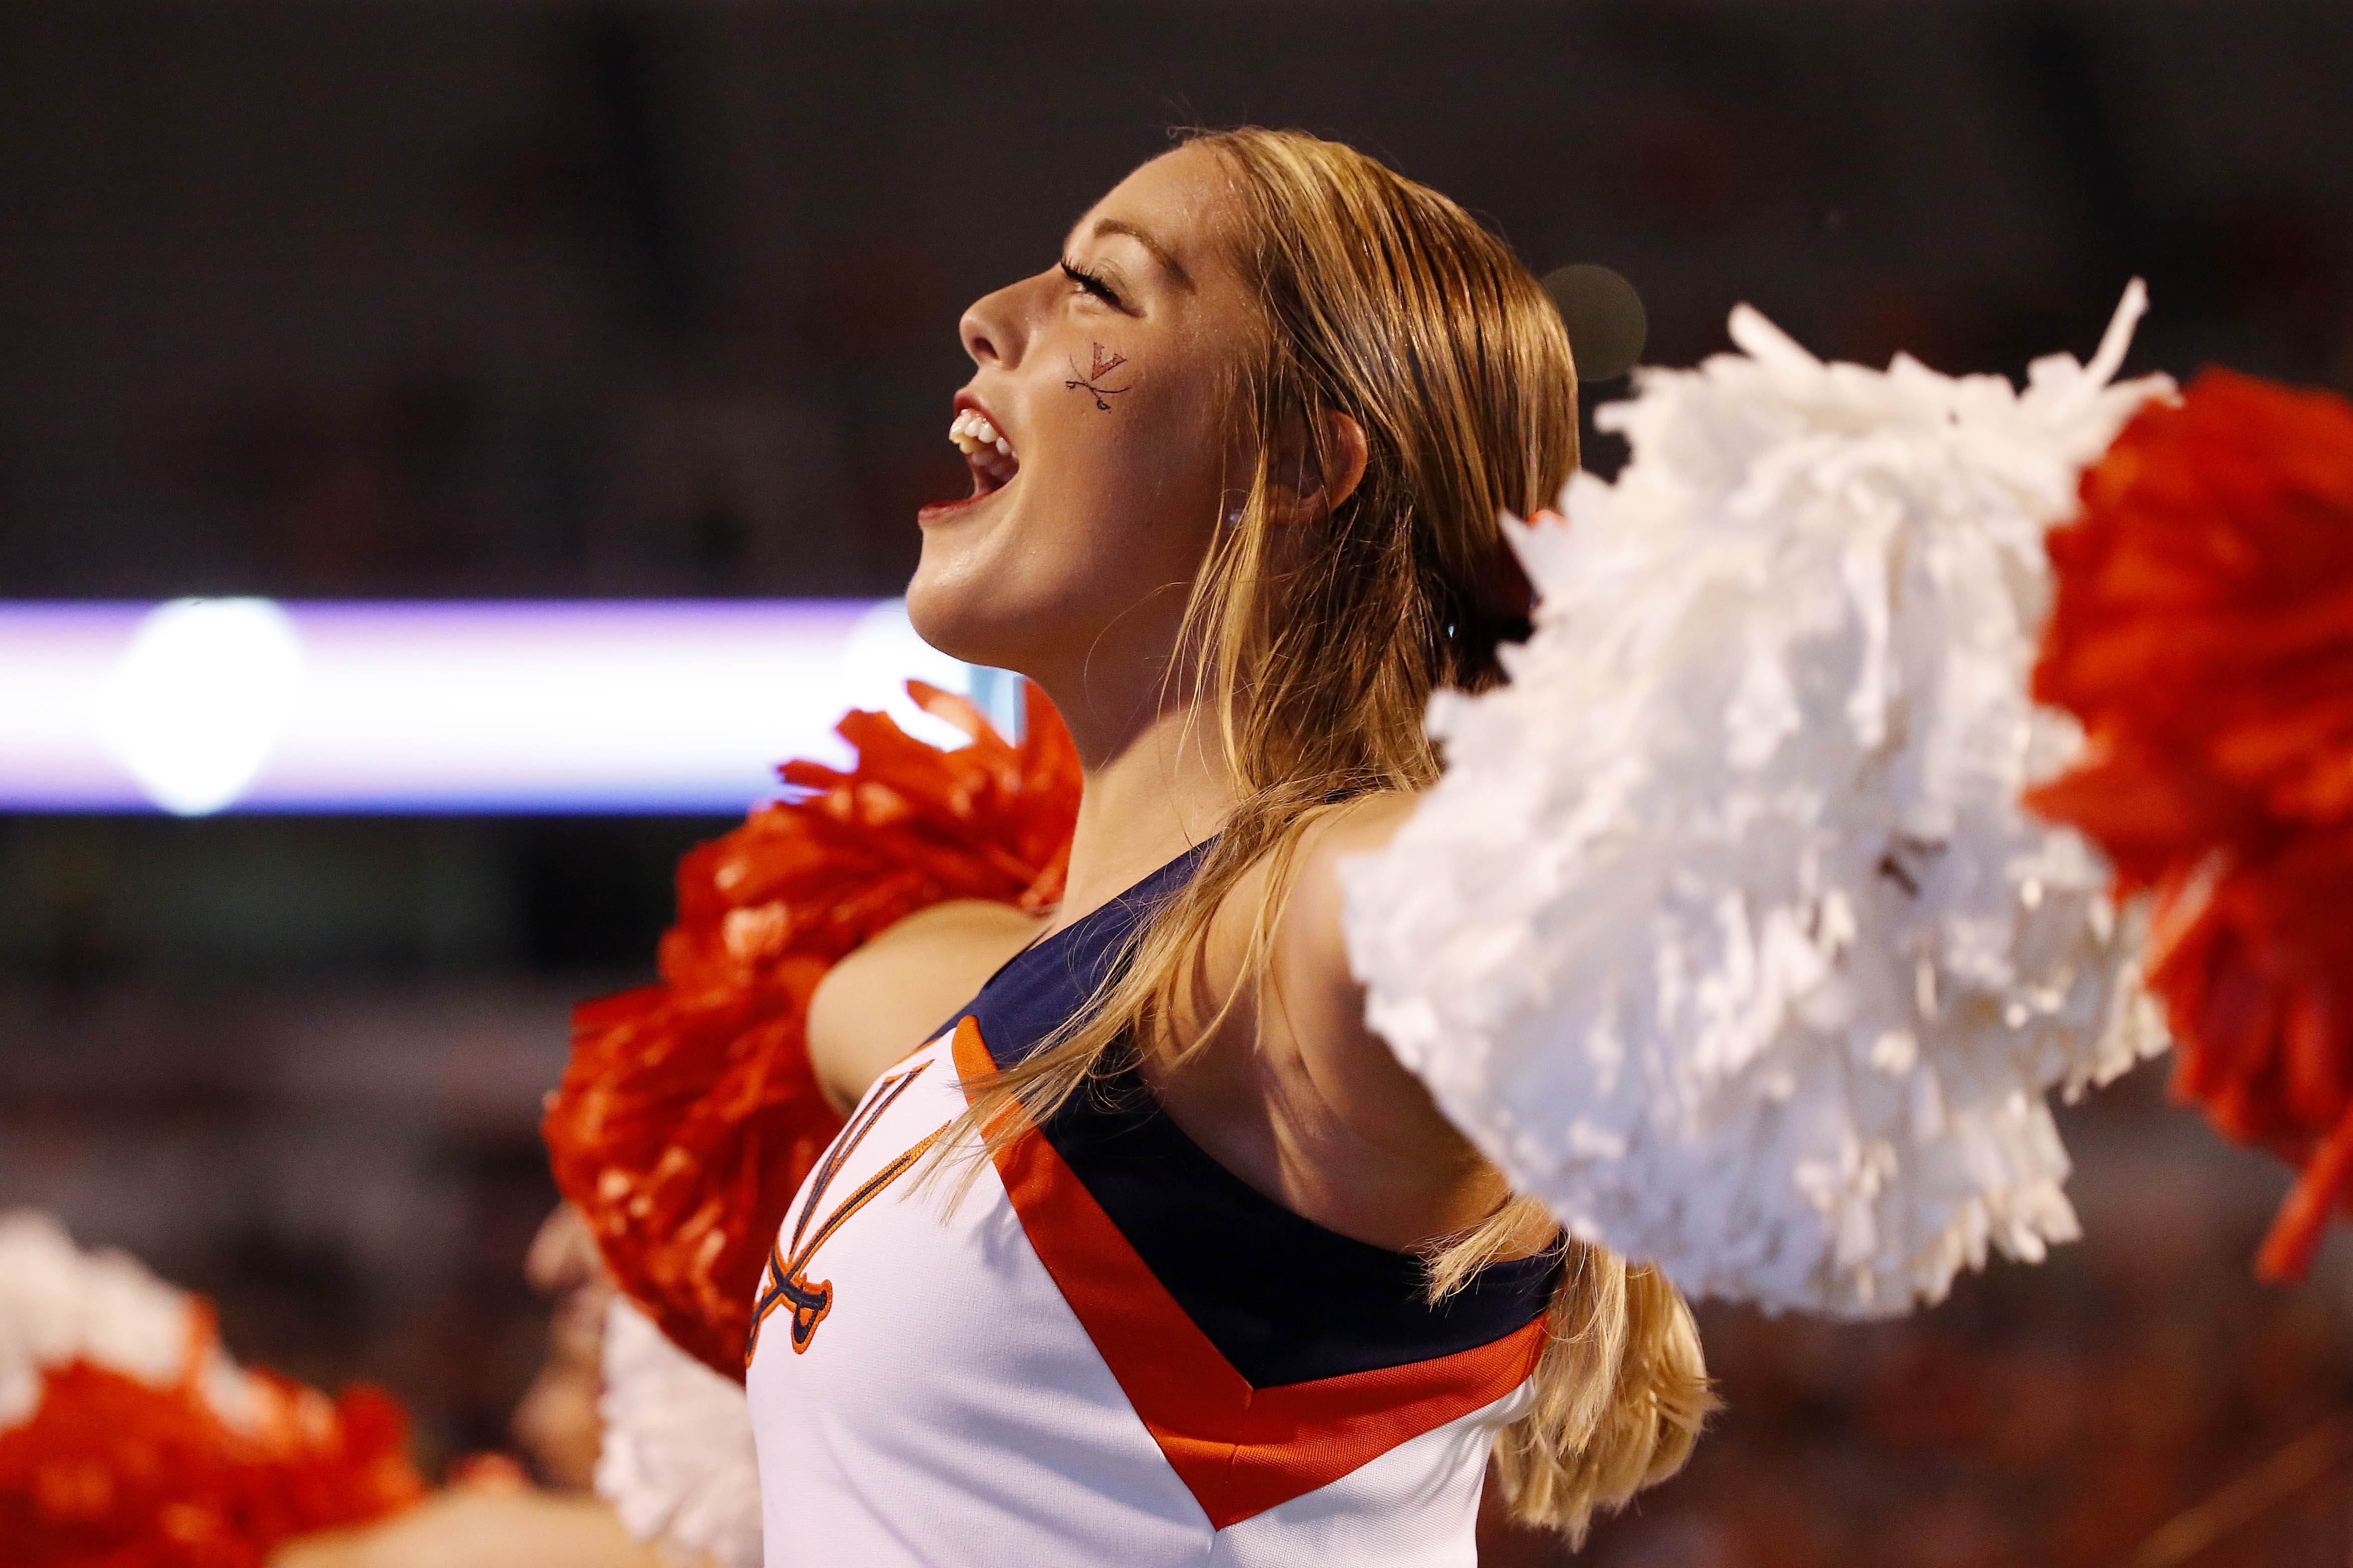 Sep 1, 2018; Charlottesville, VA, USA; A Virginia Cavaliers cheerleader yells from the sidelines during the second quarter against the Richmond Spiders at Scott Stadium. Mandatory Credit: Amber Searls-USA TODAY Sports